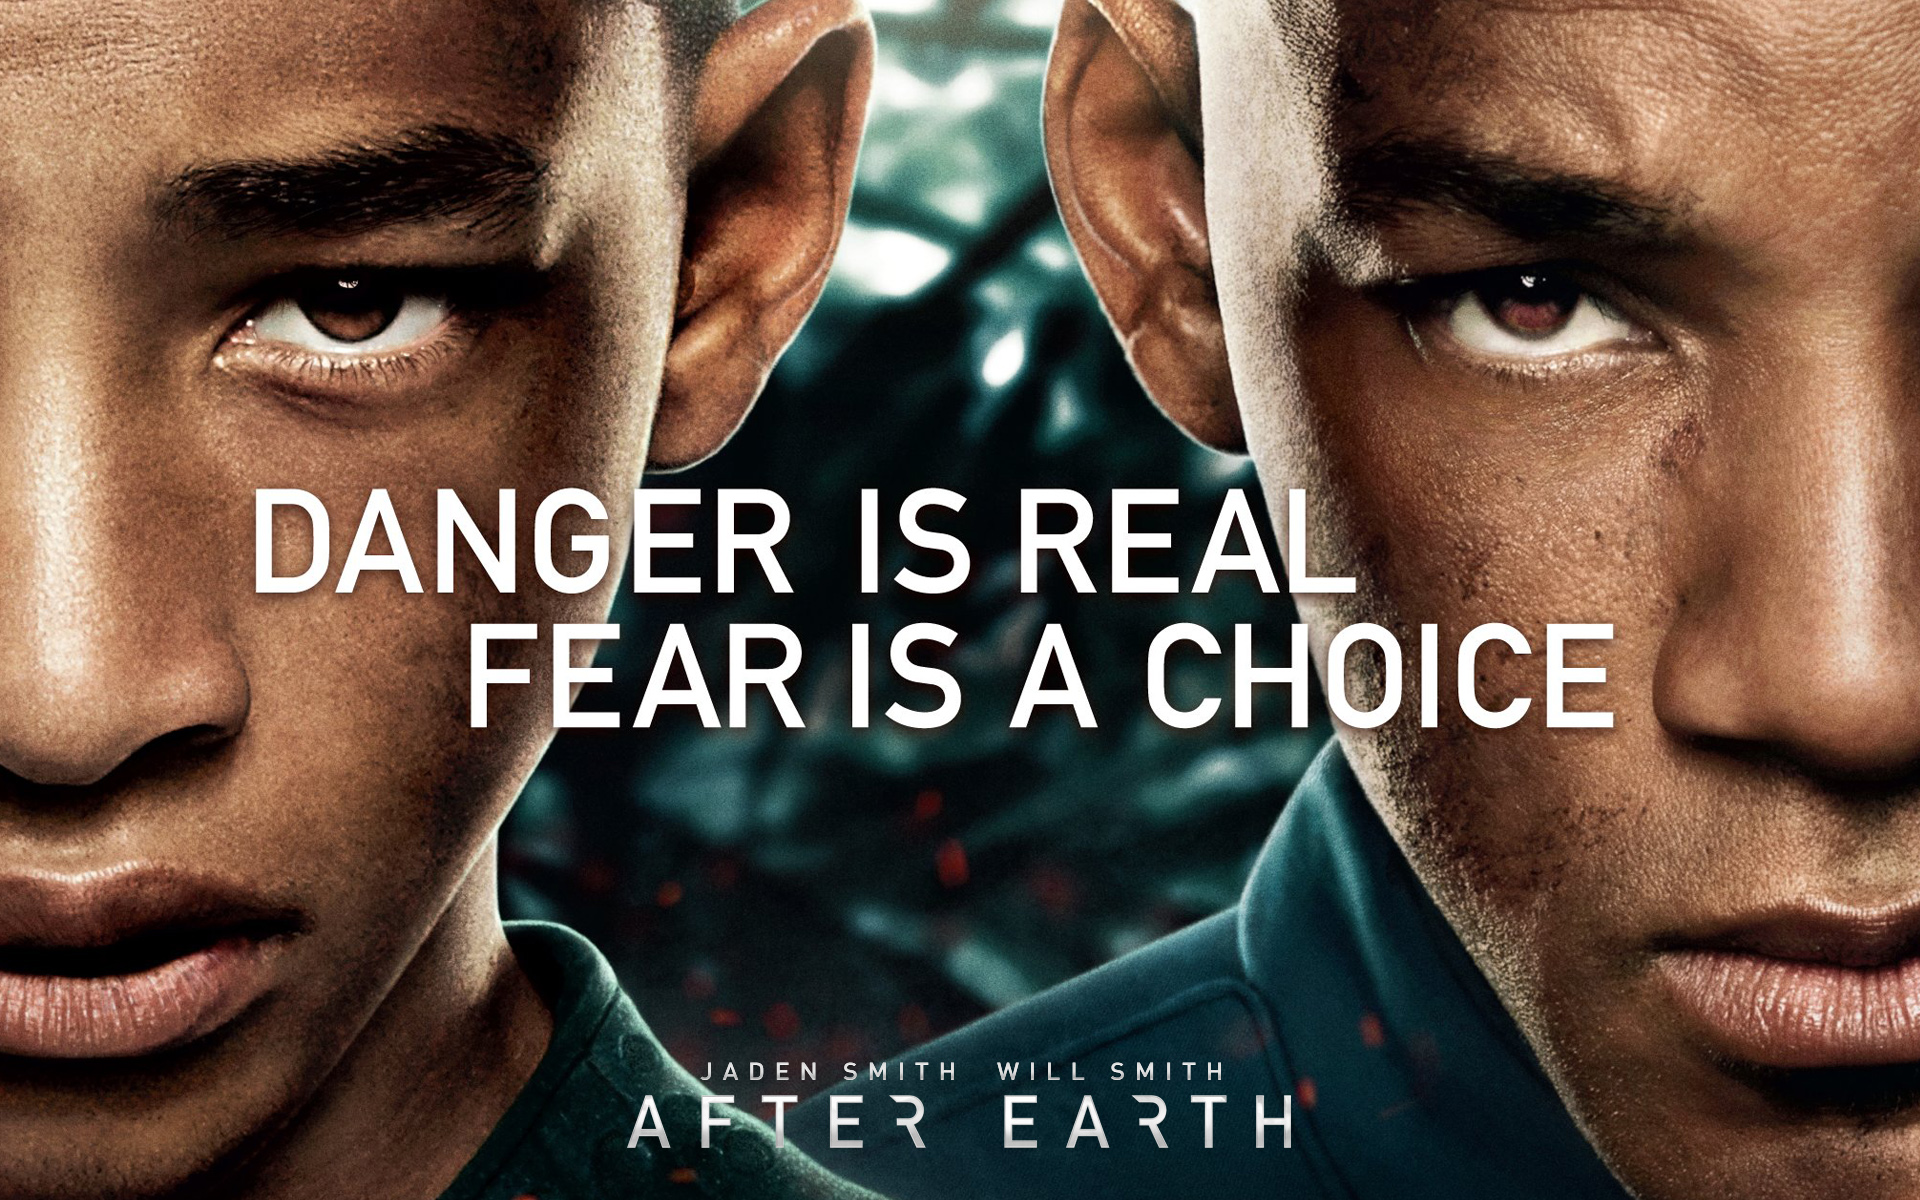 After Earth wallpaper 4